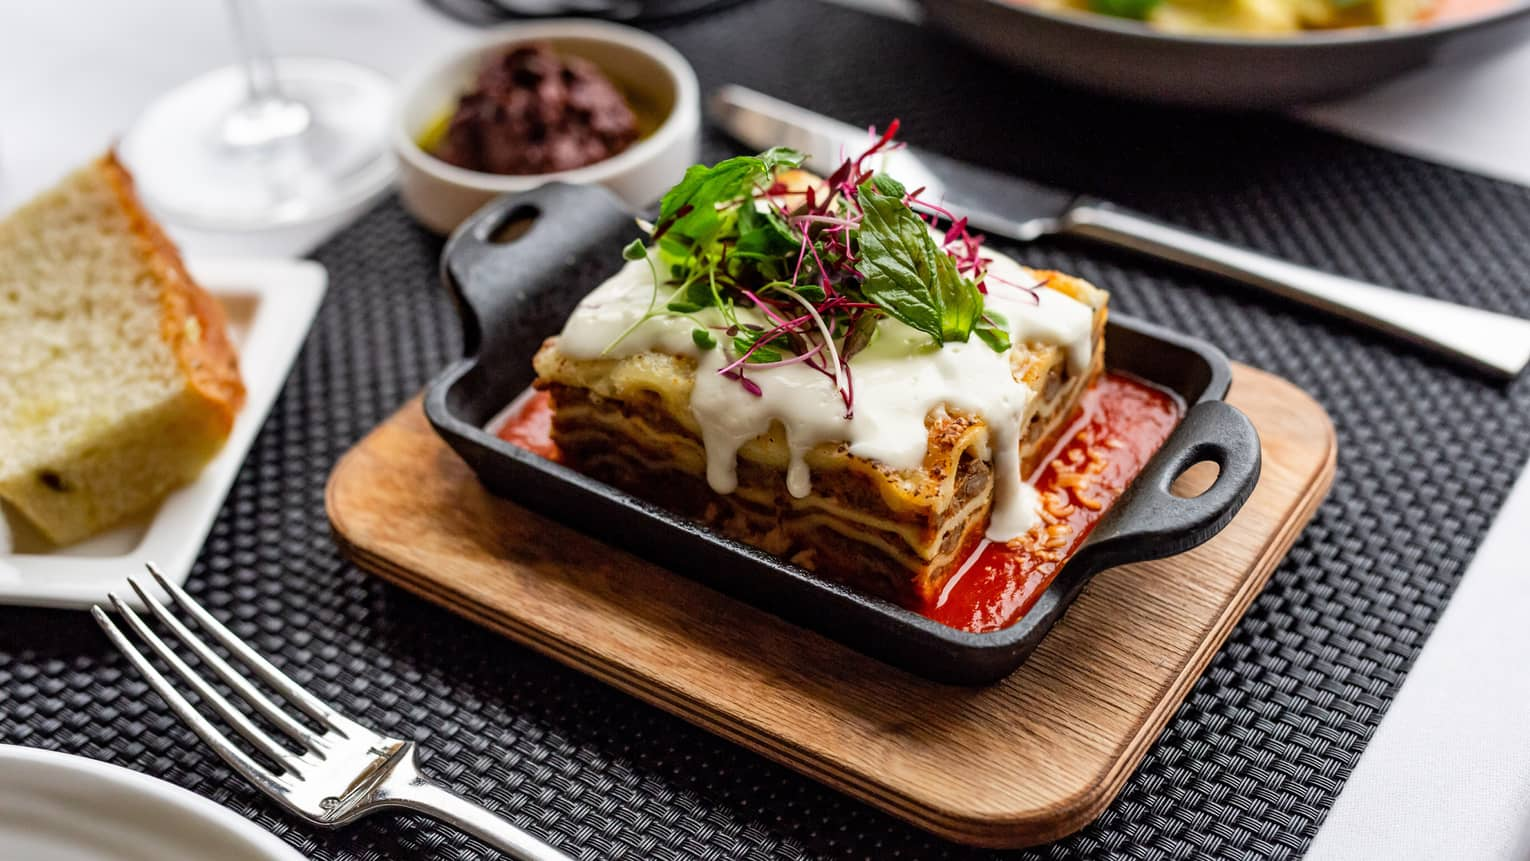 Close up of Four Seasons Houston's restaurants Quattro's House-made lasagna, slow-cooked five-layers with 44 Farms beef bolognese, ricotta-parmesan cheese fondue in a cast iron dish on top of a wooden tray